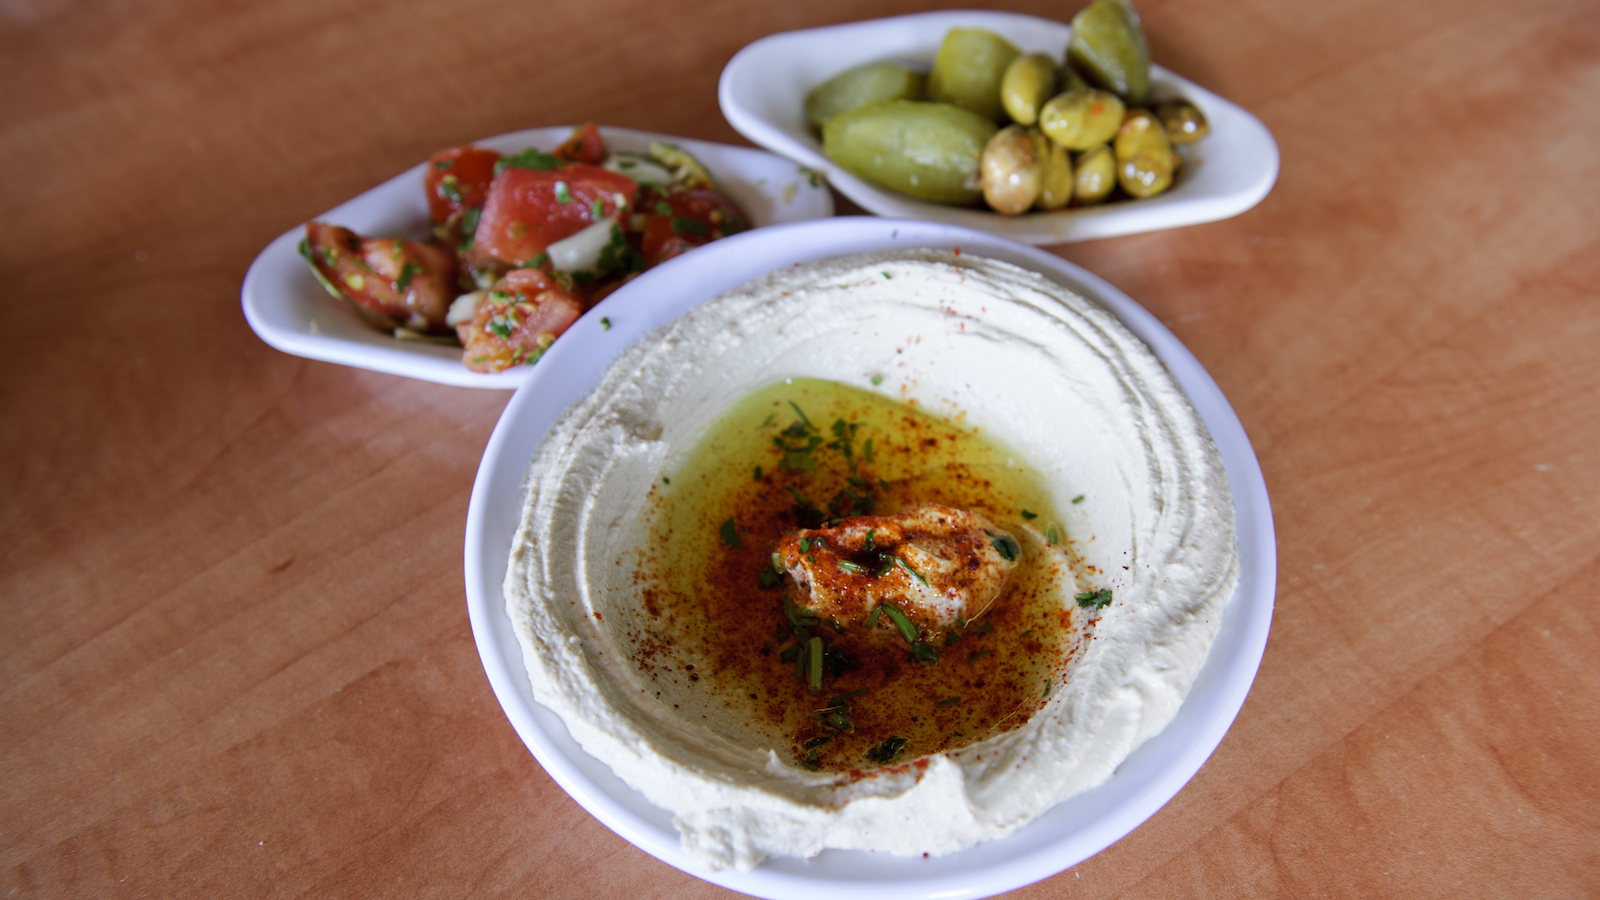 scents-and-flavors-syrian-food-FT-BLOG0517.jpg